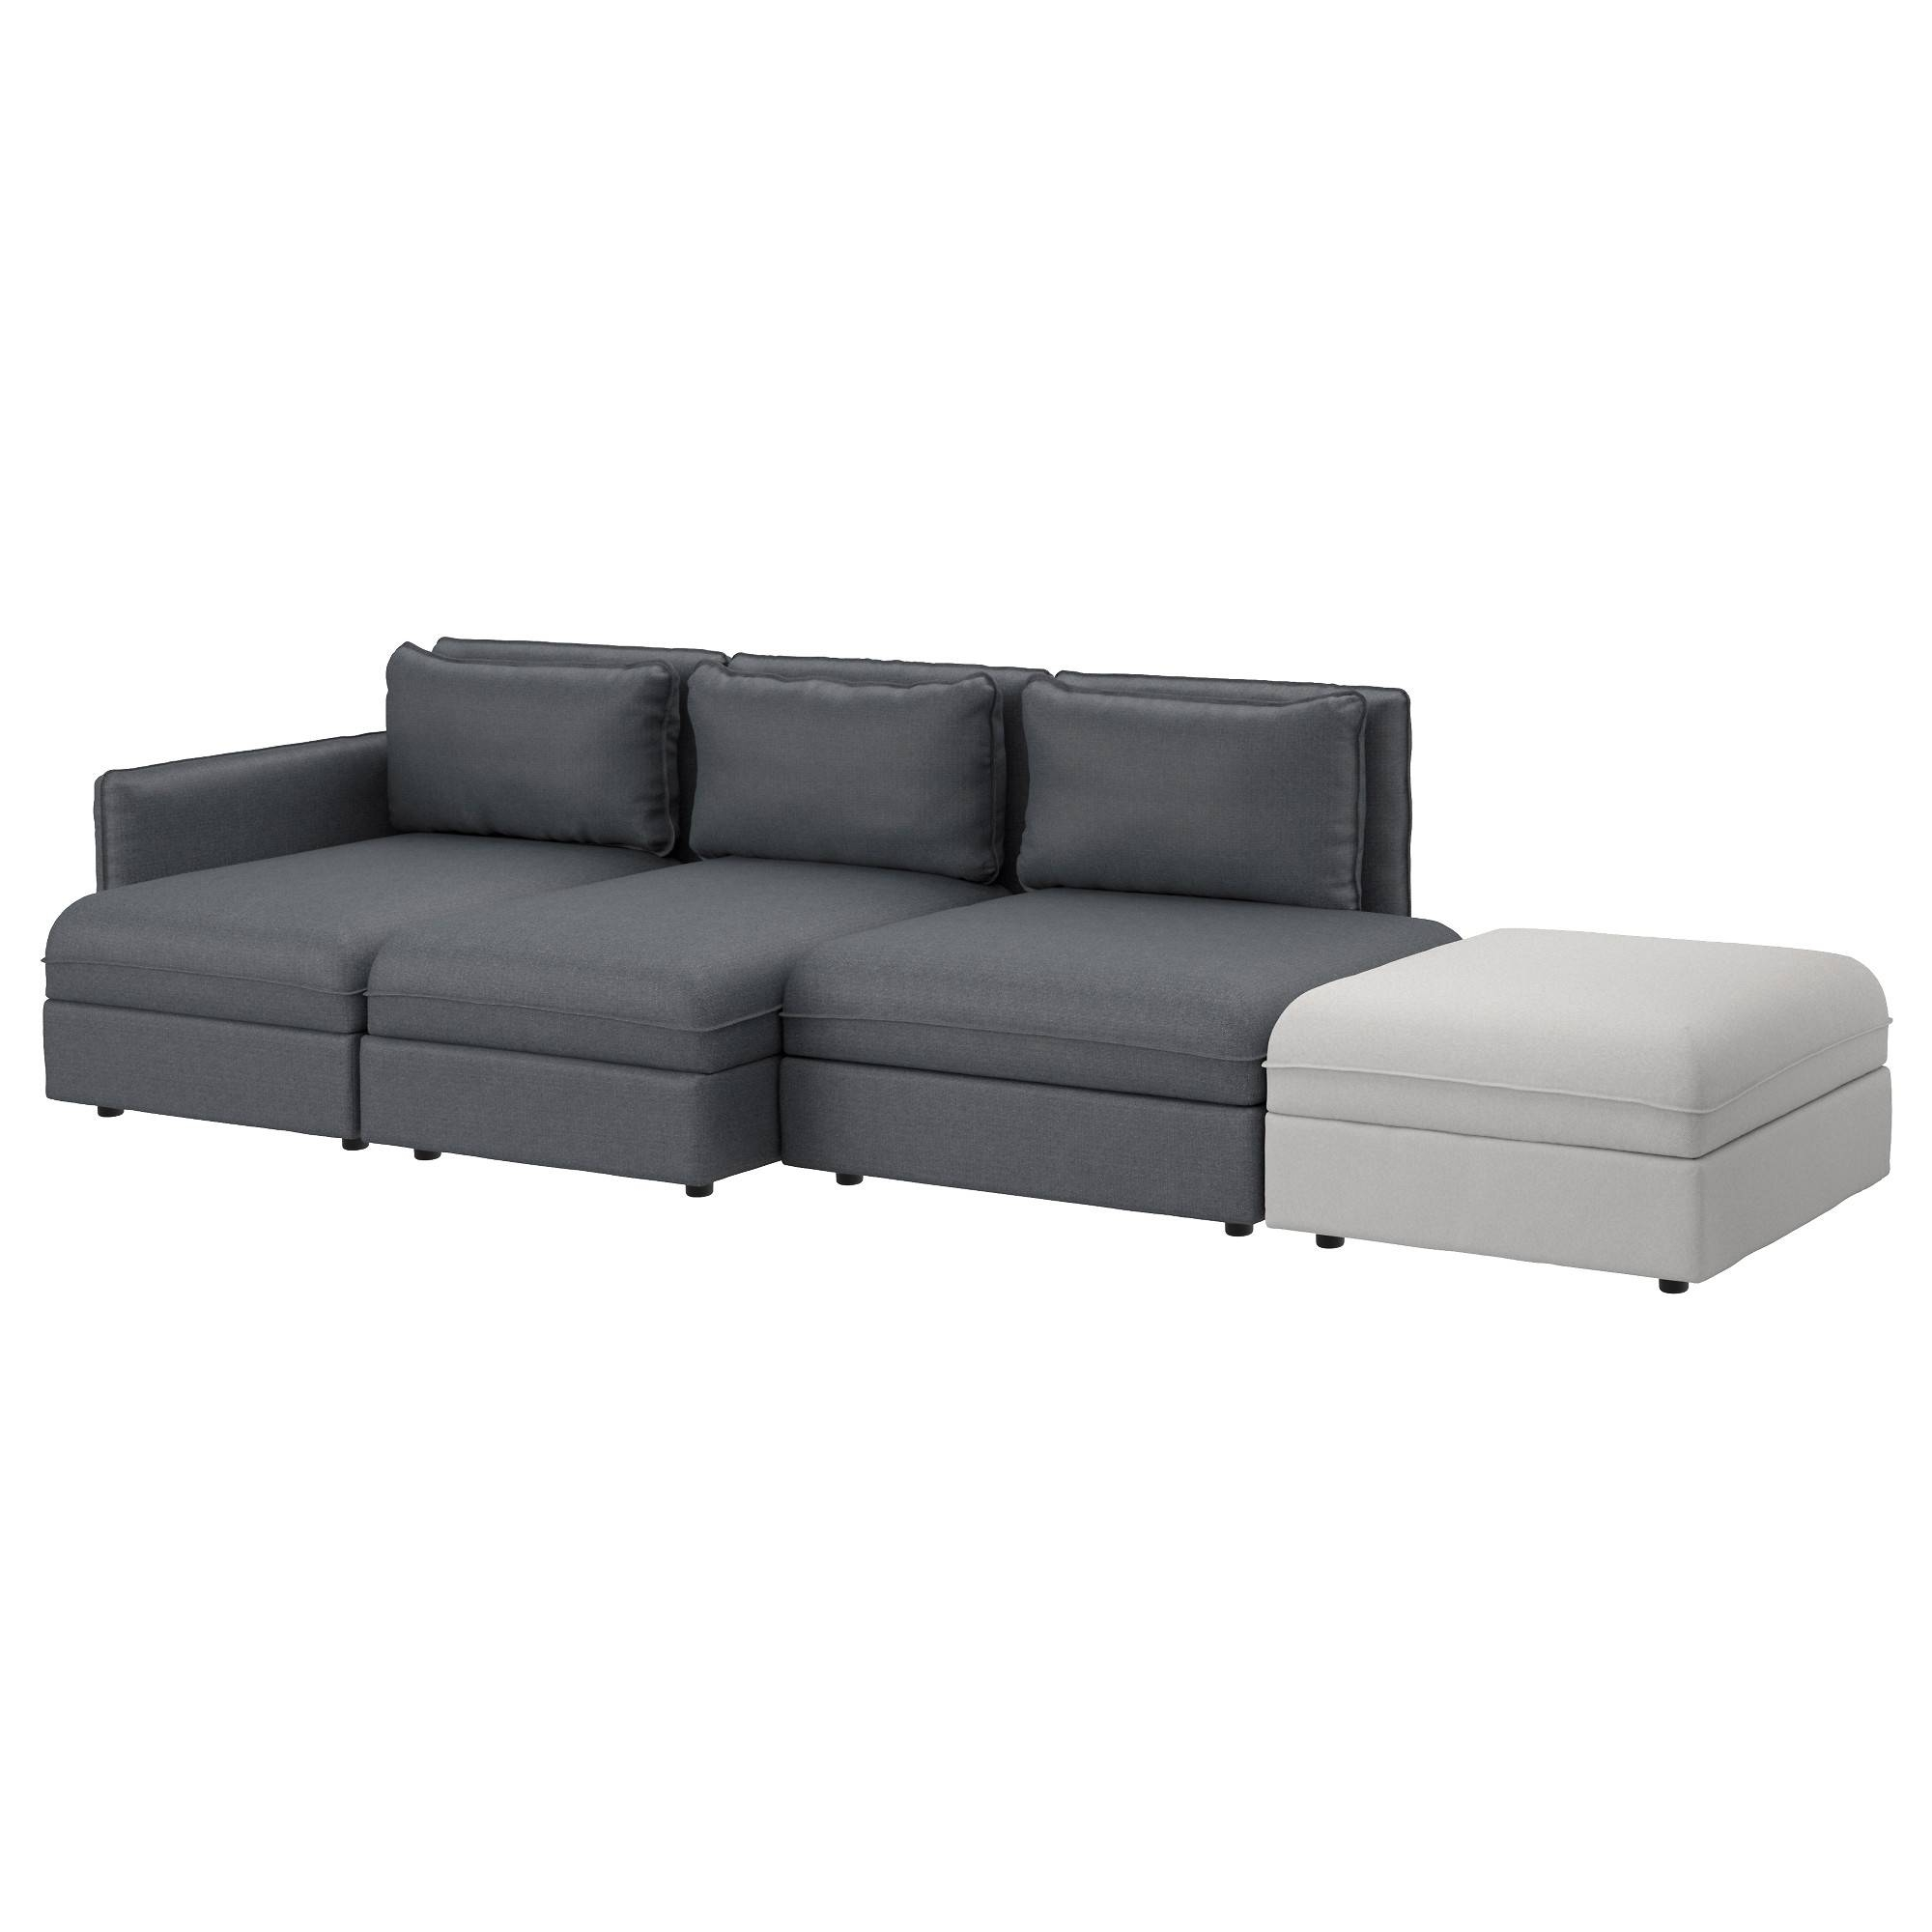 Sectional Sofas & Couches - Ikea inside Ikea Sofa Storage (Image 23 of 25)